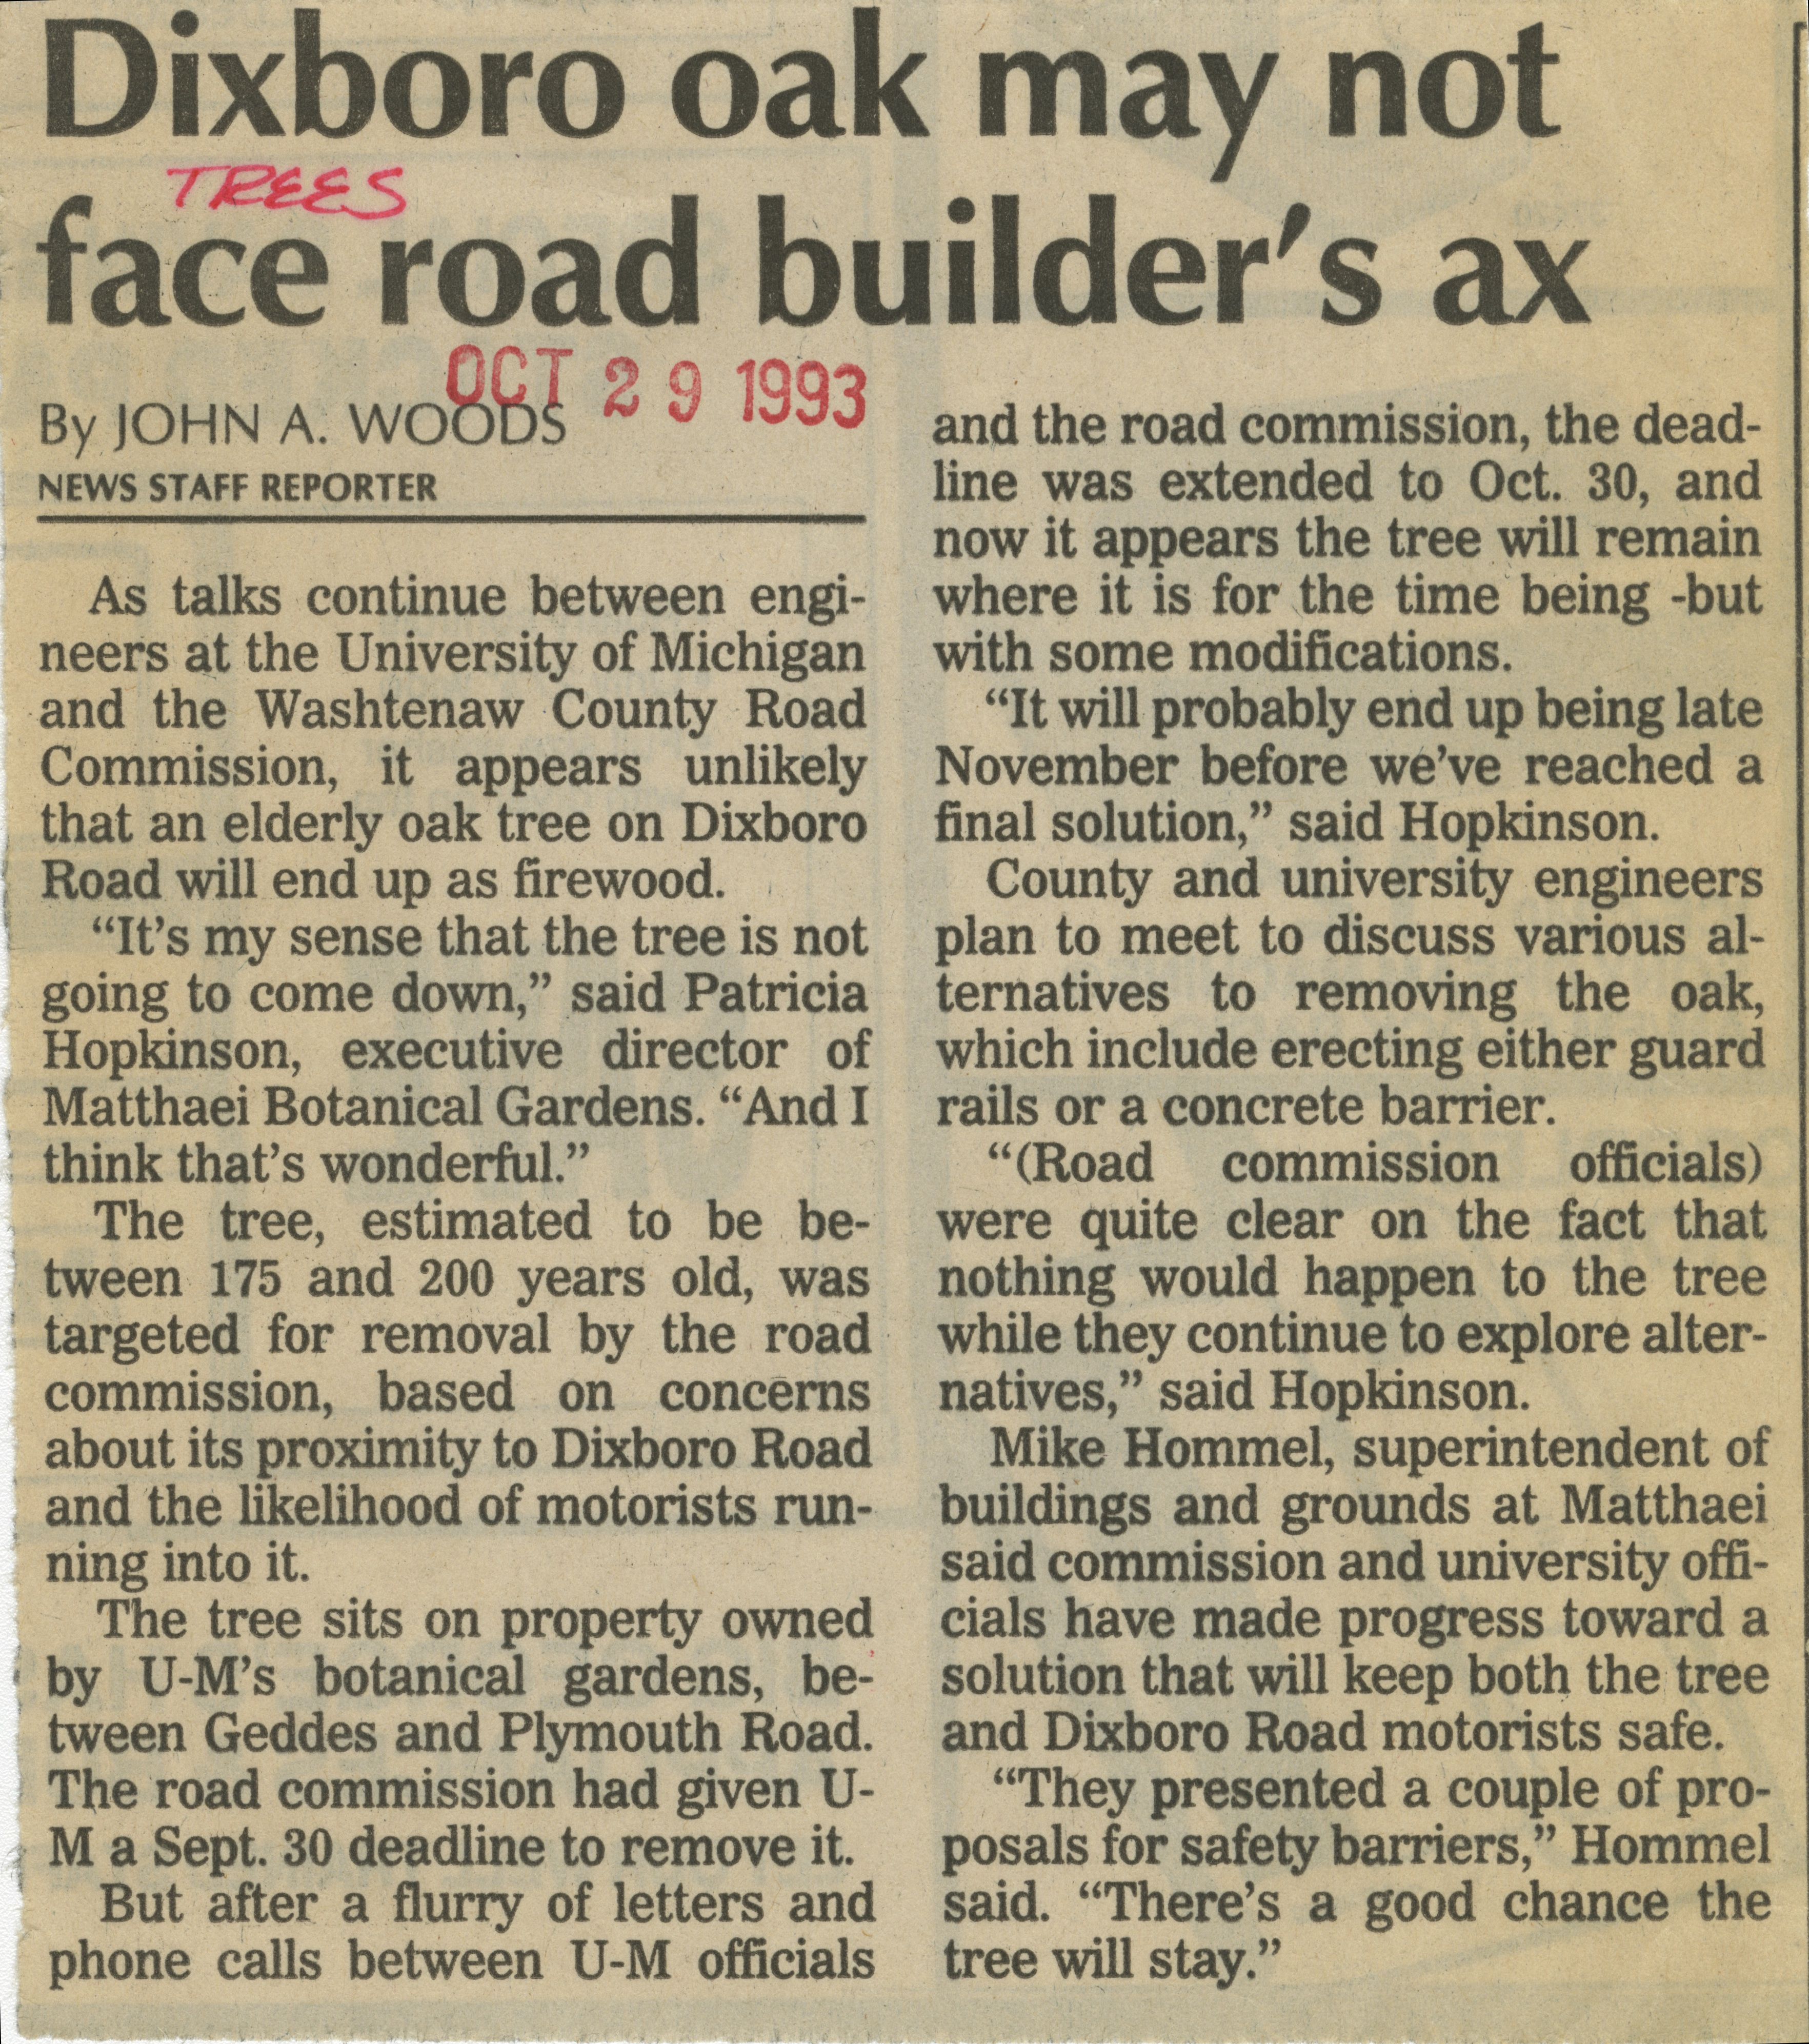 Dixboro oak may not face road builder's ax image